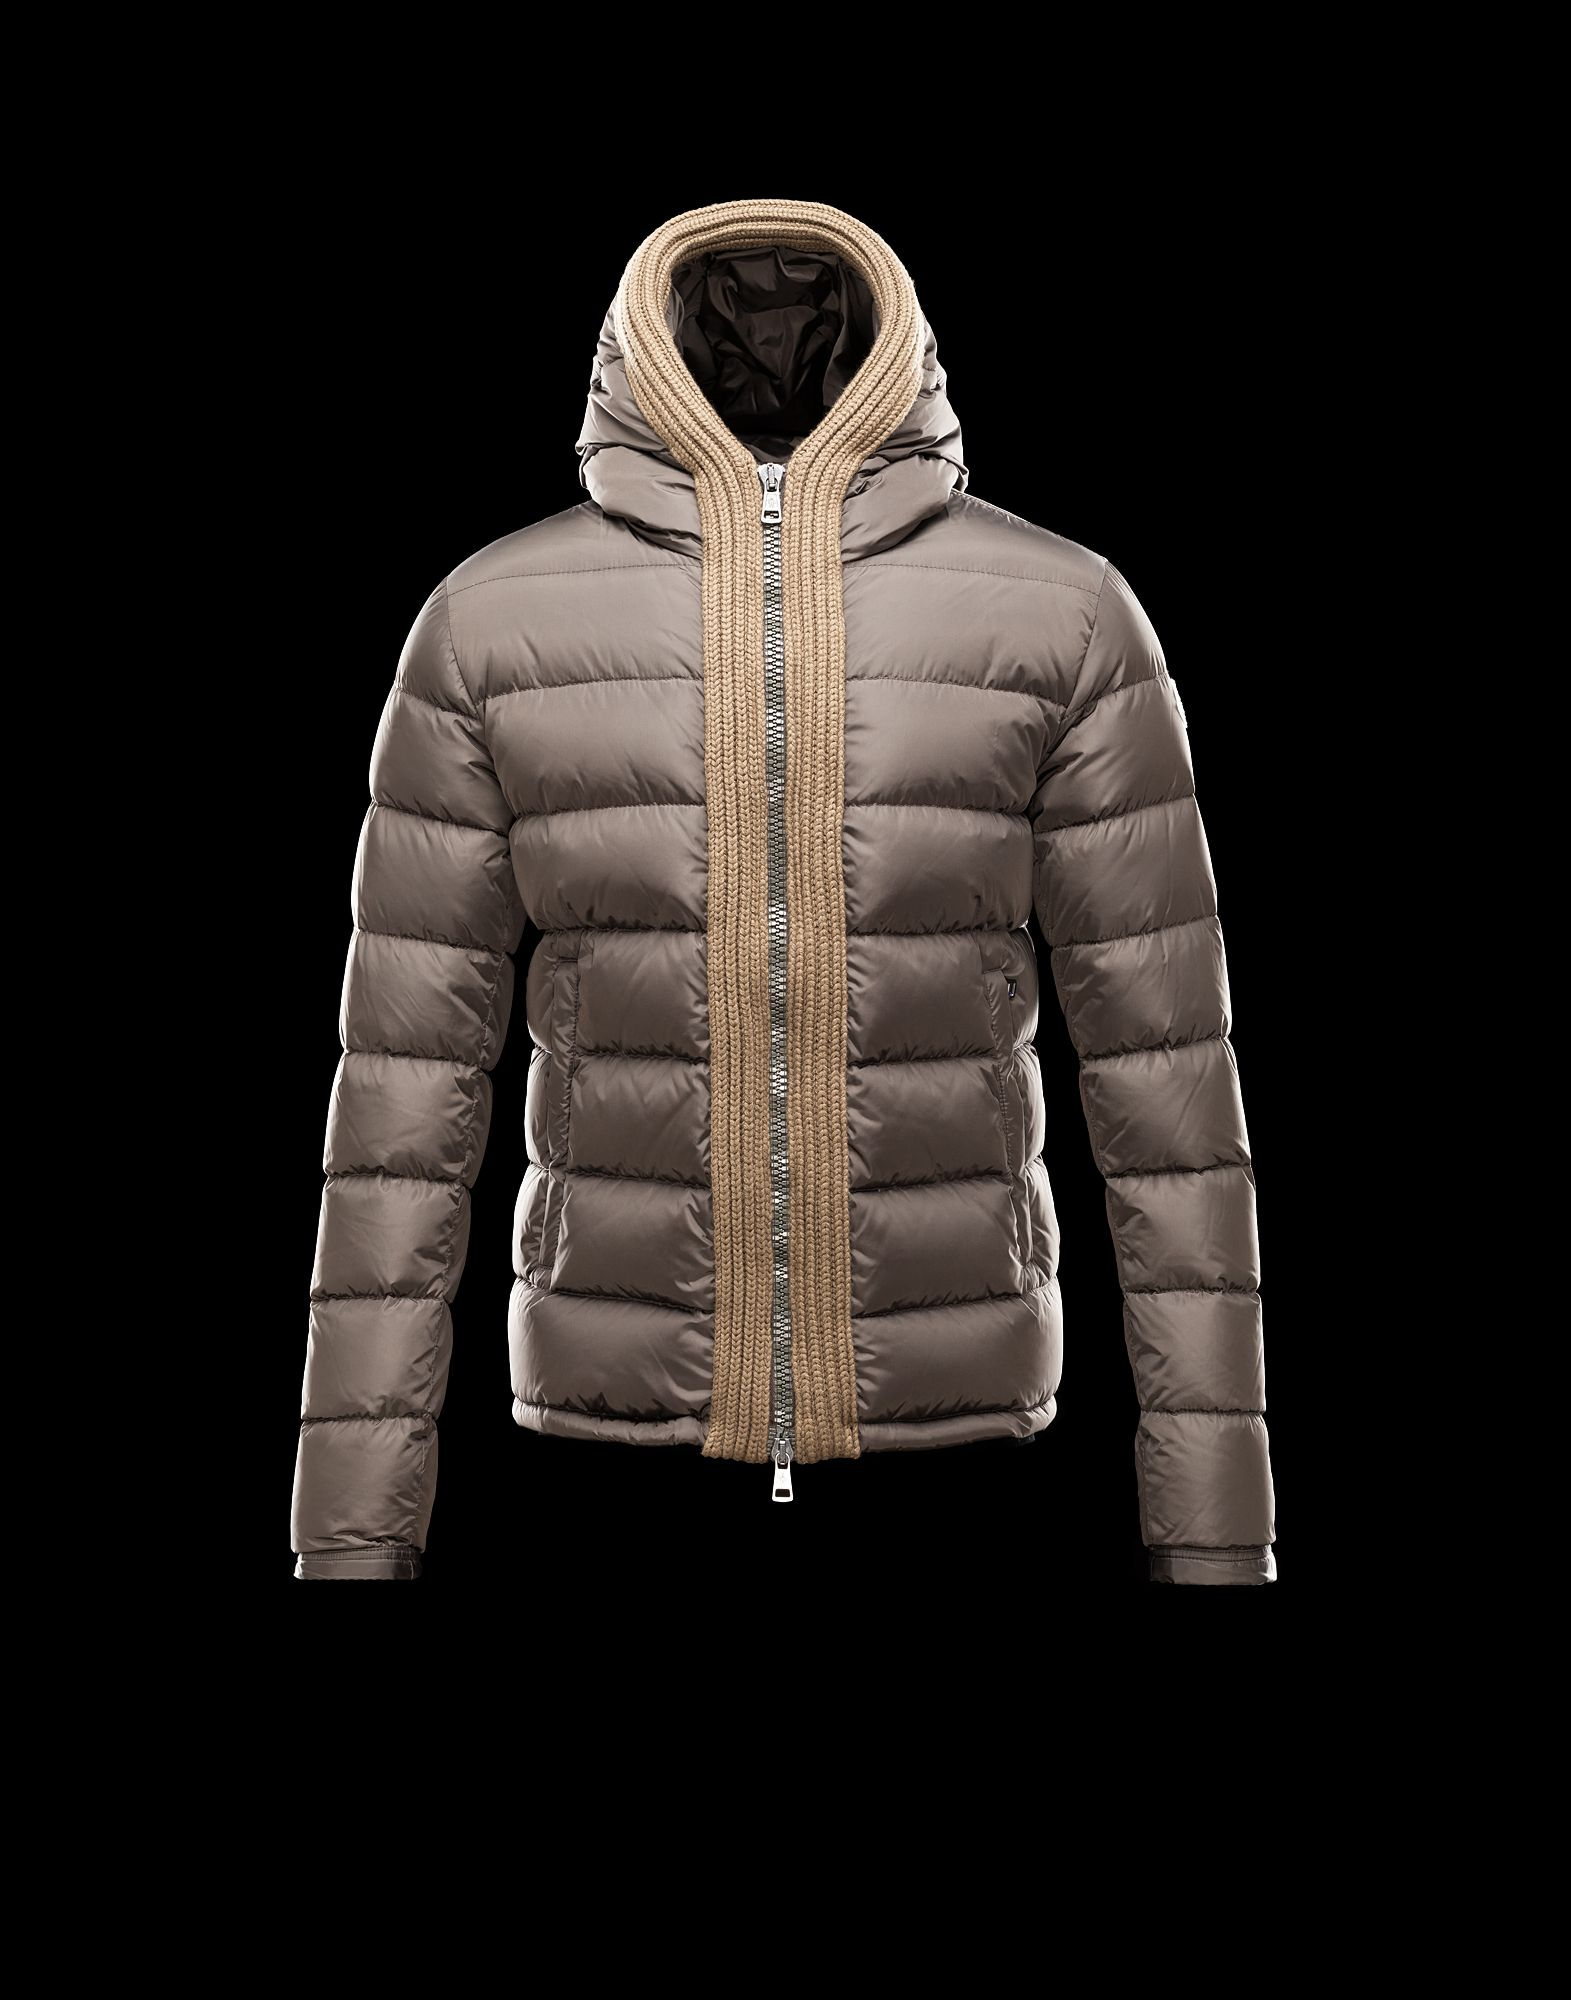 Moncler Men's Down Jacket Hooded Down Green